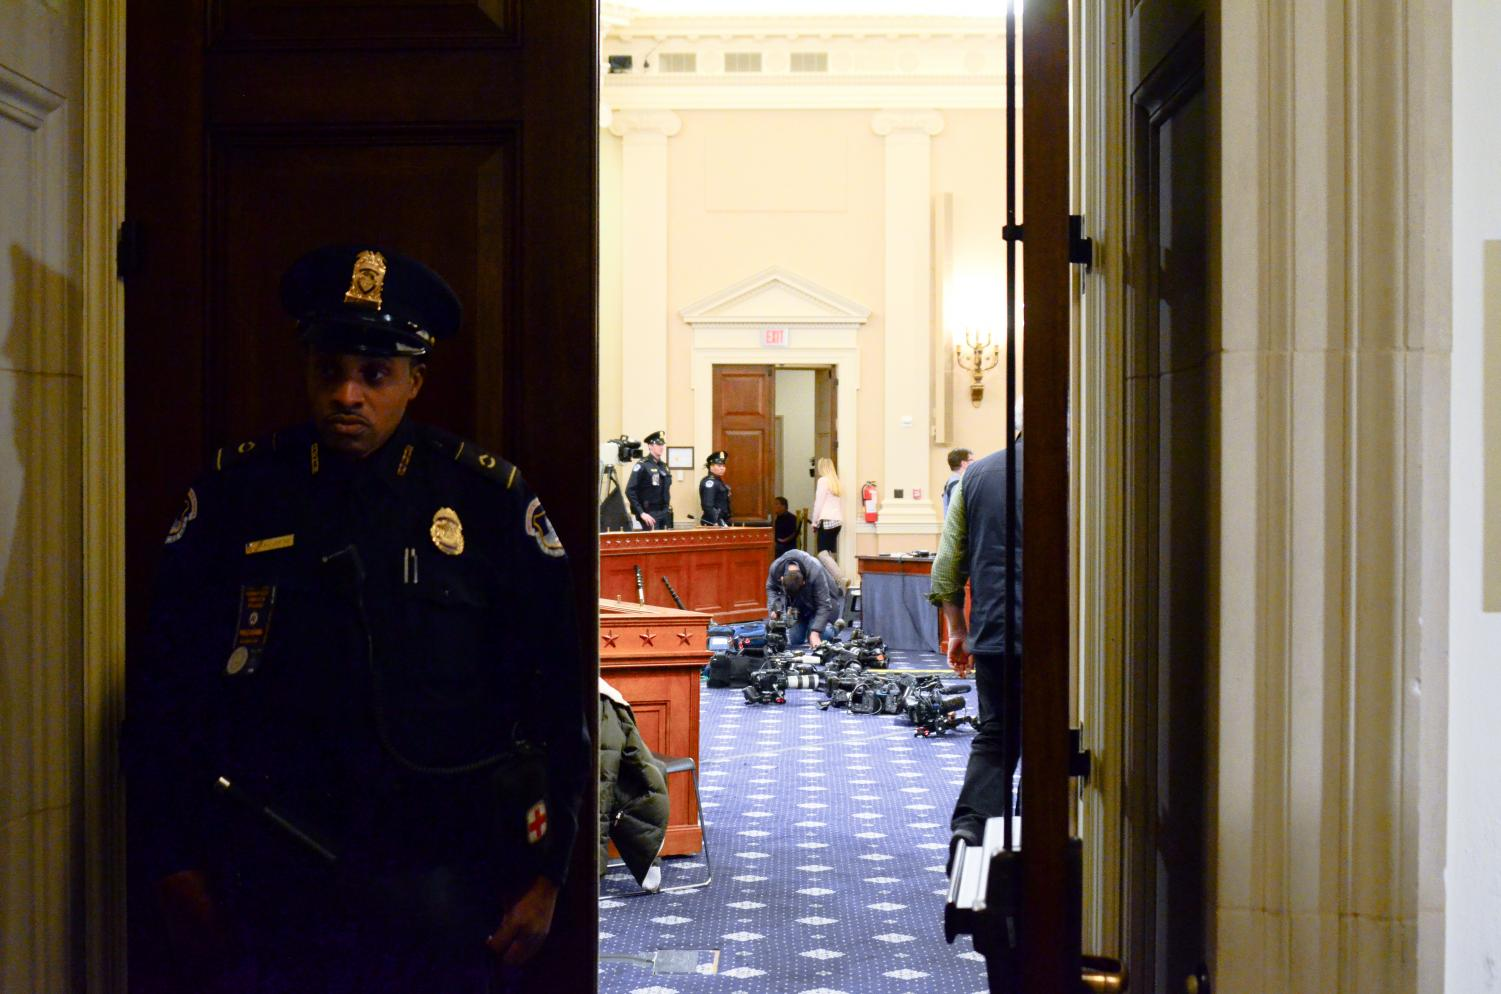 Longworth 1100 in the Longworth House Office Building, where Gordon Sondland testified before the House Intelligence Committee today. Sondland answered questions about his knowledge of alleged arrangements between U.S. President Donald Trump and Ukrainian President Volodymyr Zelensky, starting at 9 a.m. this morning.